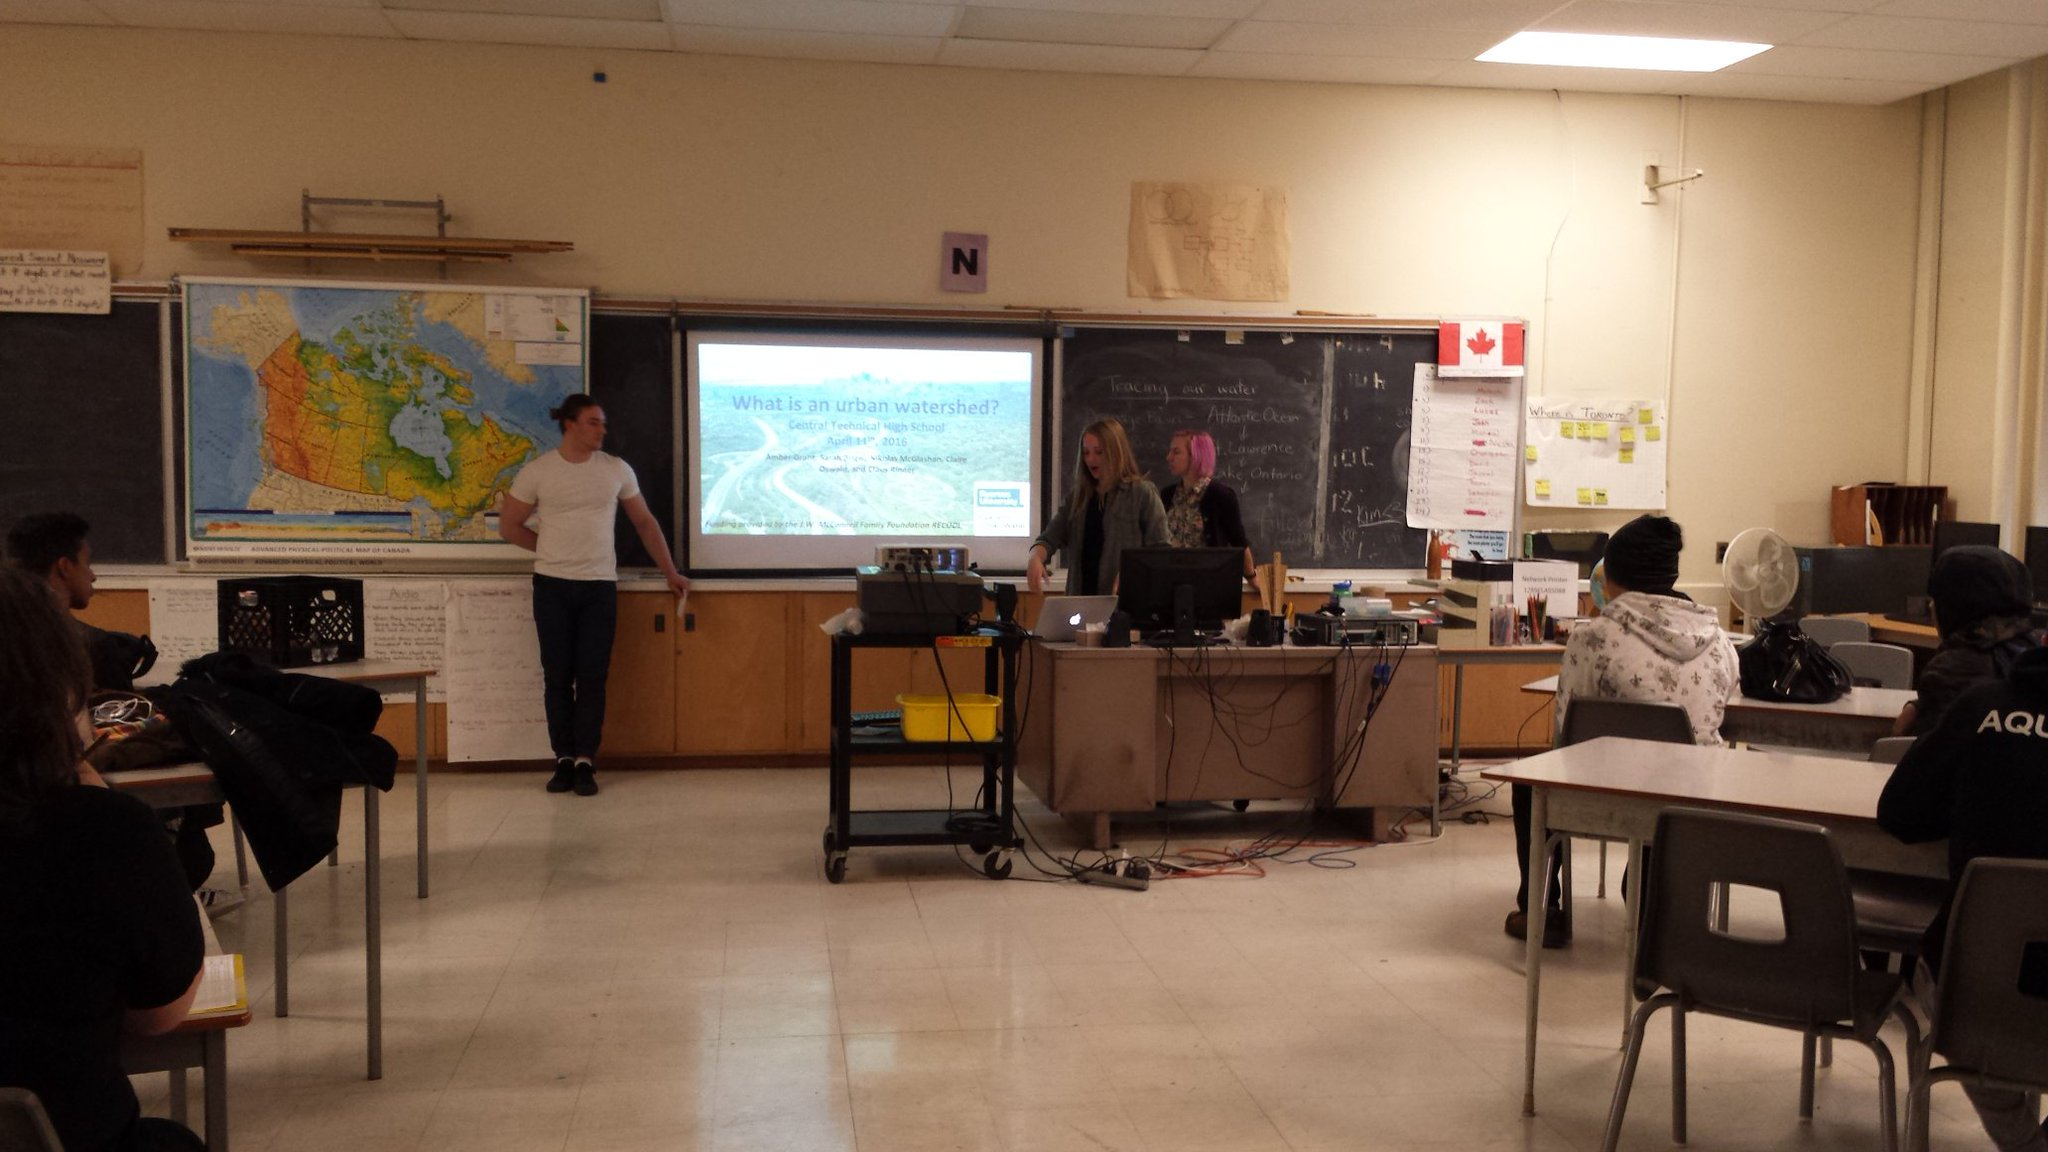 @RyersonGeo #EUS students presenting an urban watershed lesson at Central Technical High School. @RyUrbanWater https://t.co/uQV0BdKxgZ